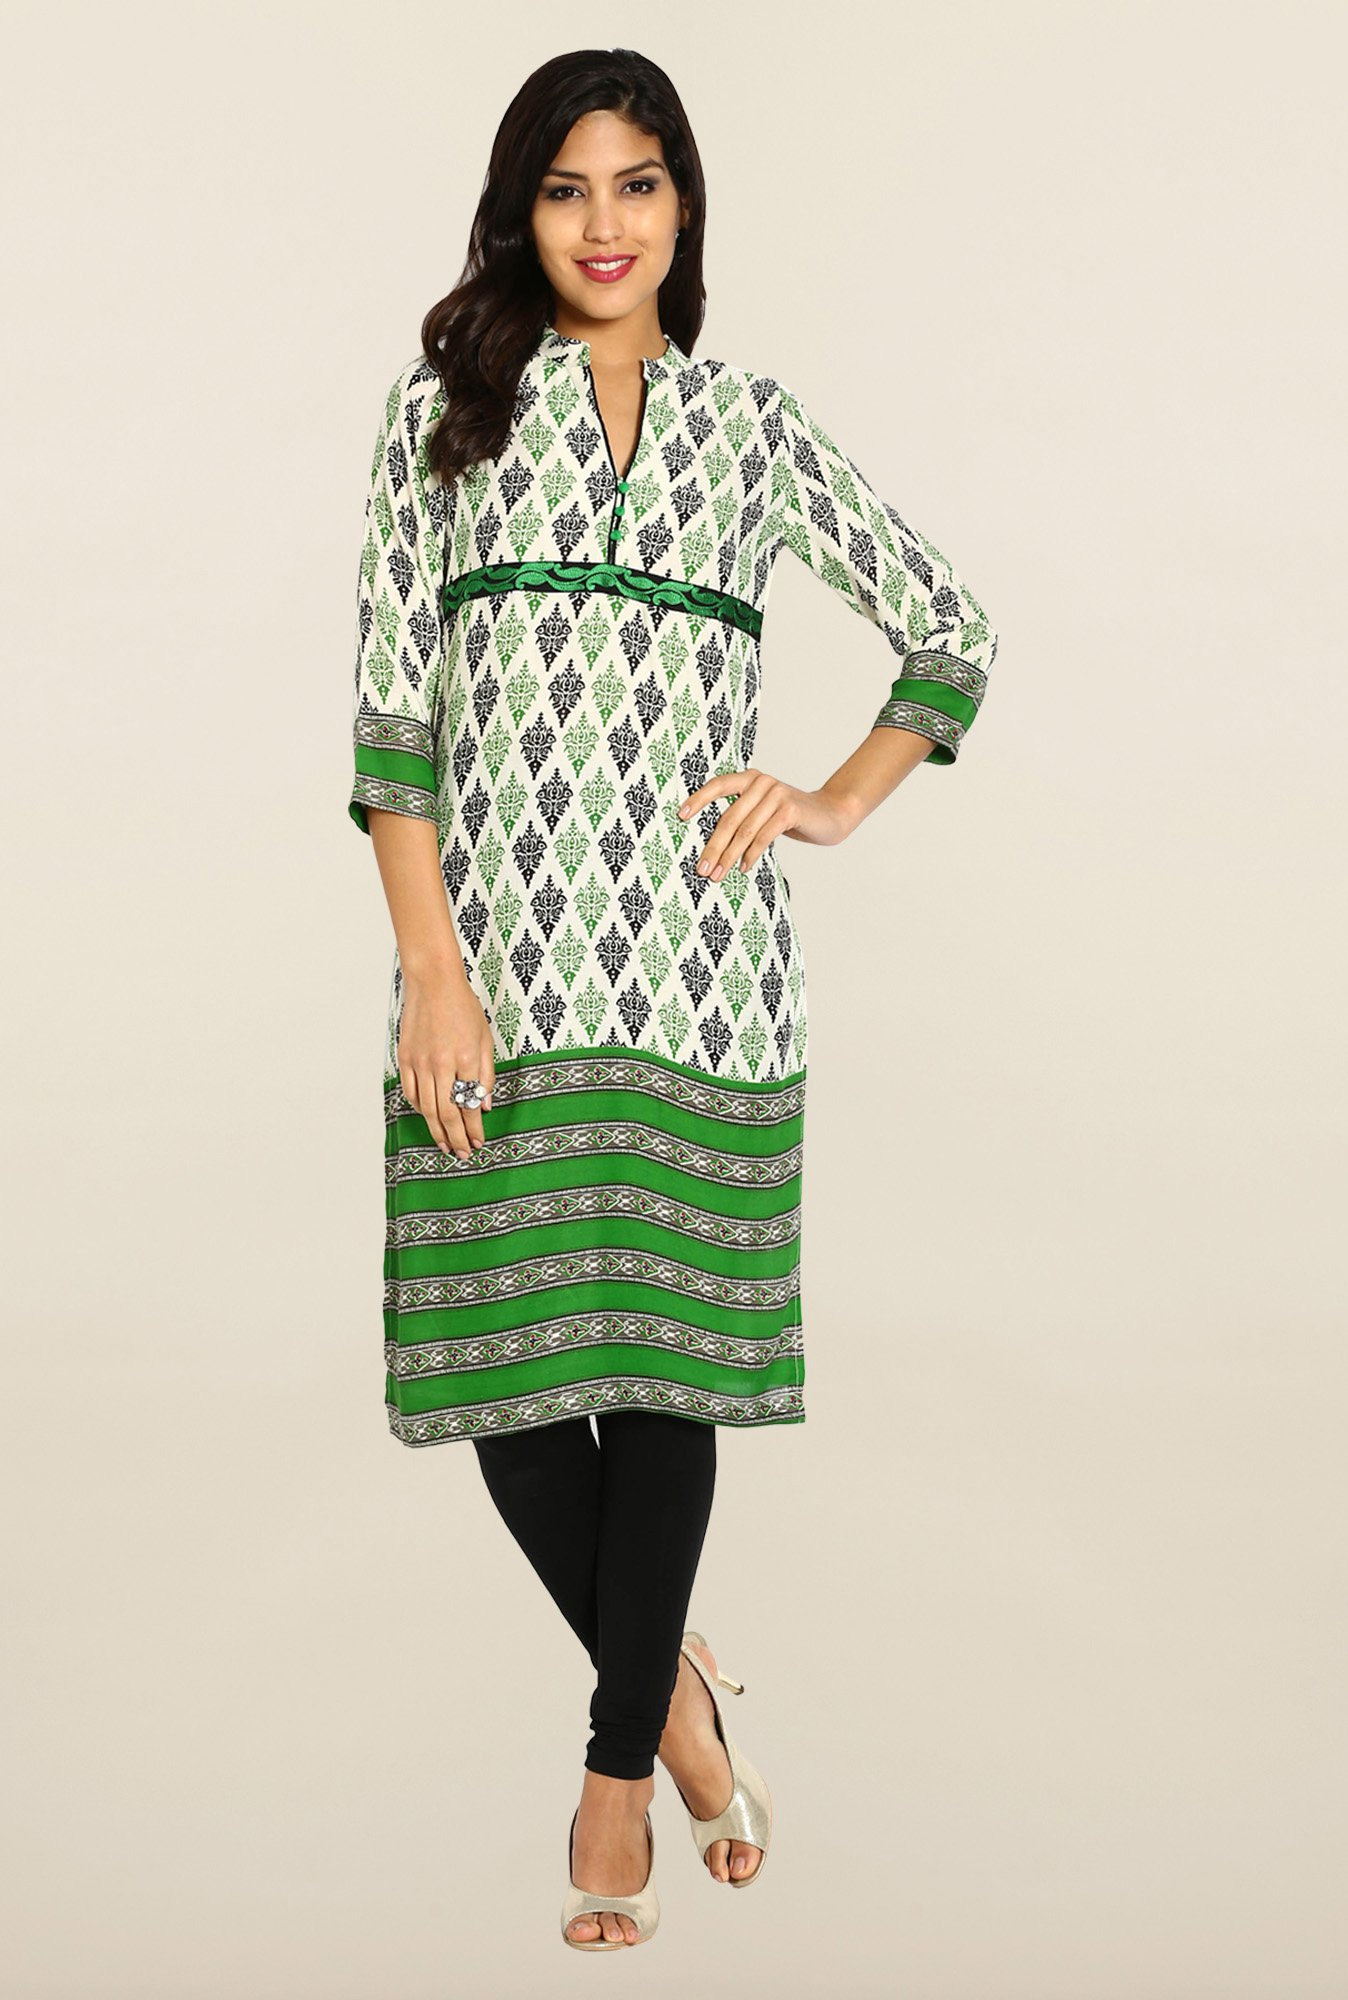 Soch Cream & Green Cotton Kurta